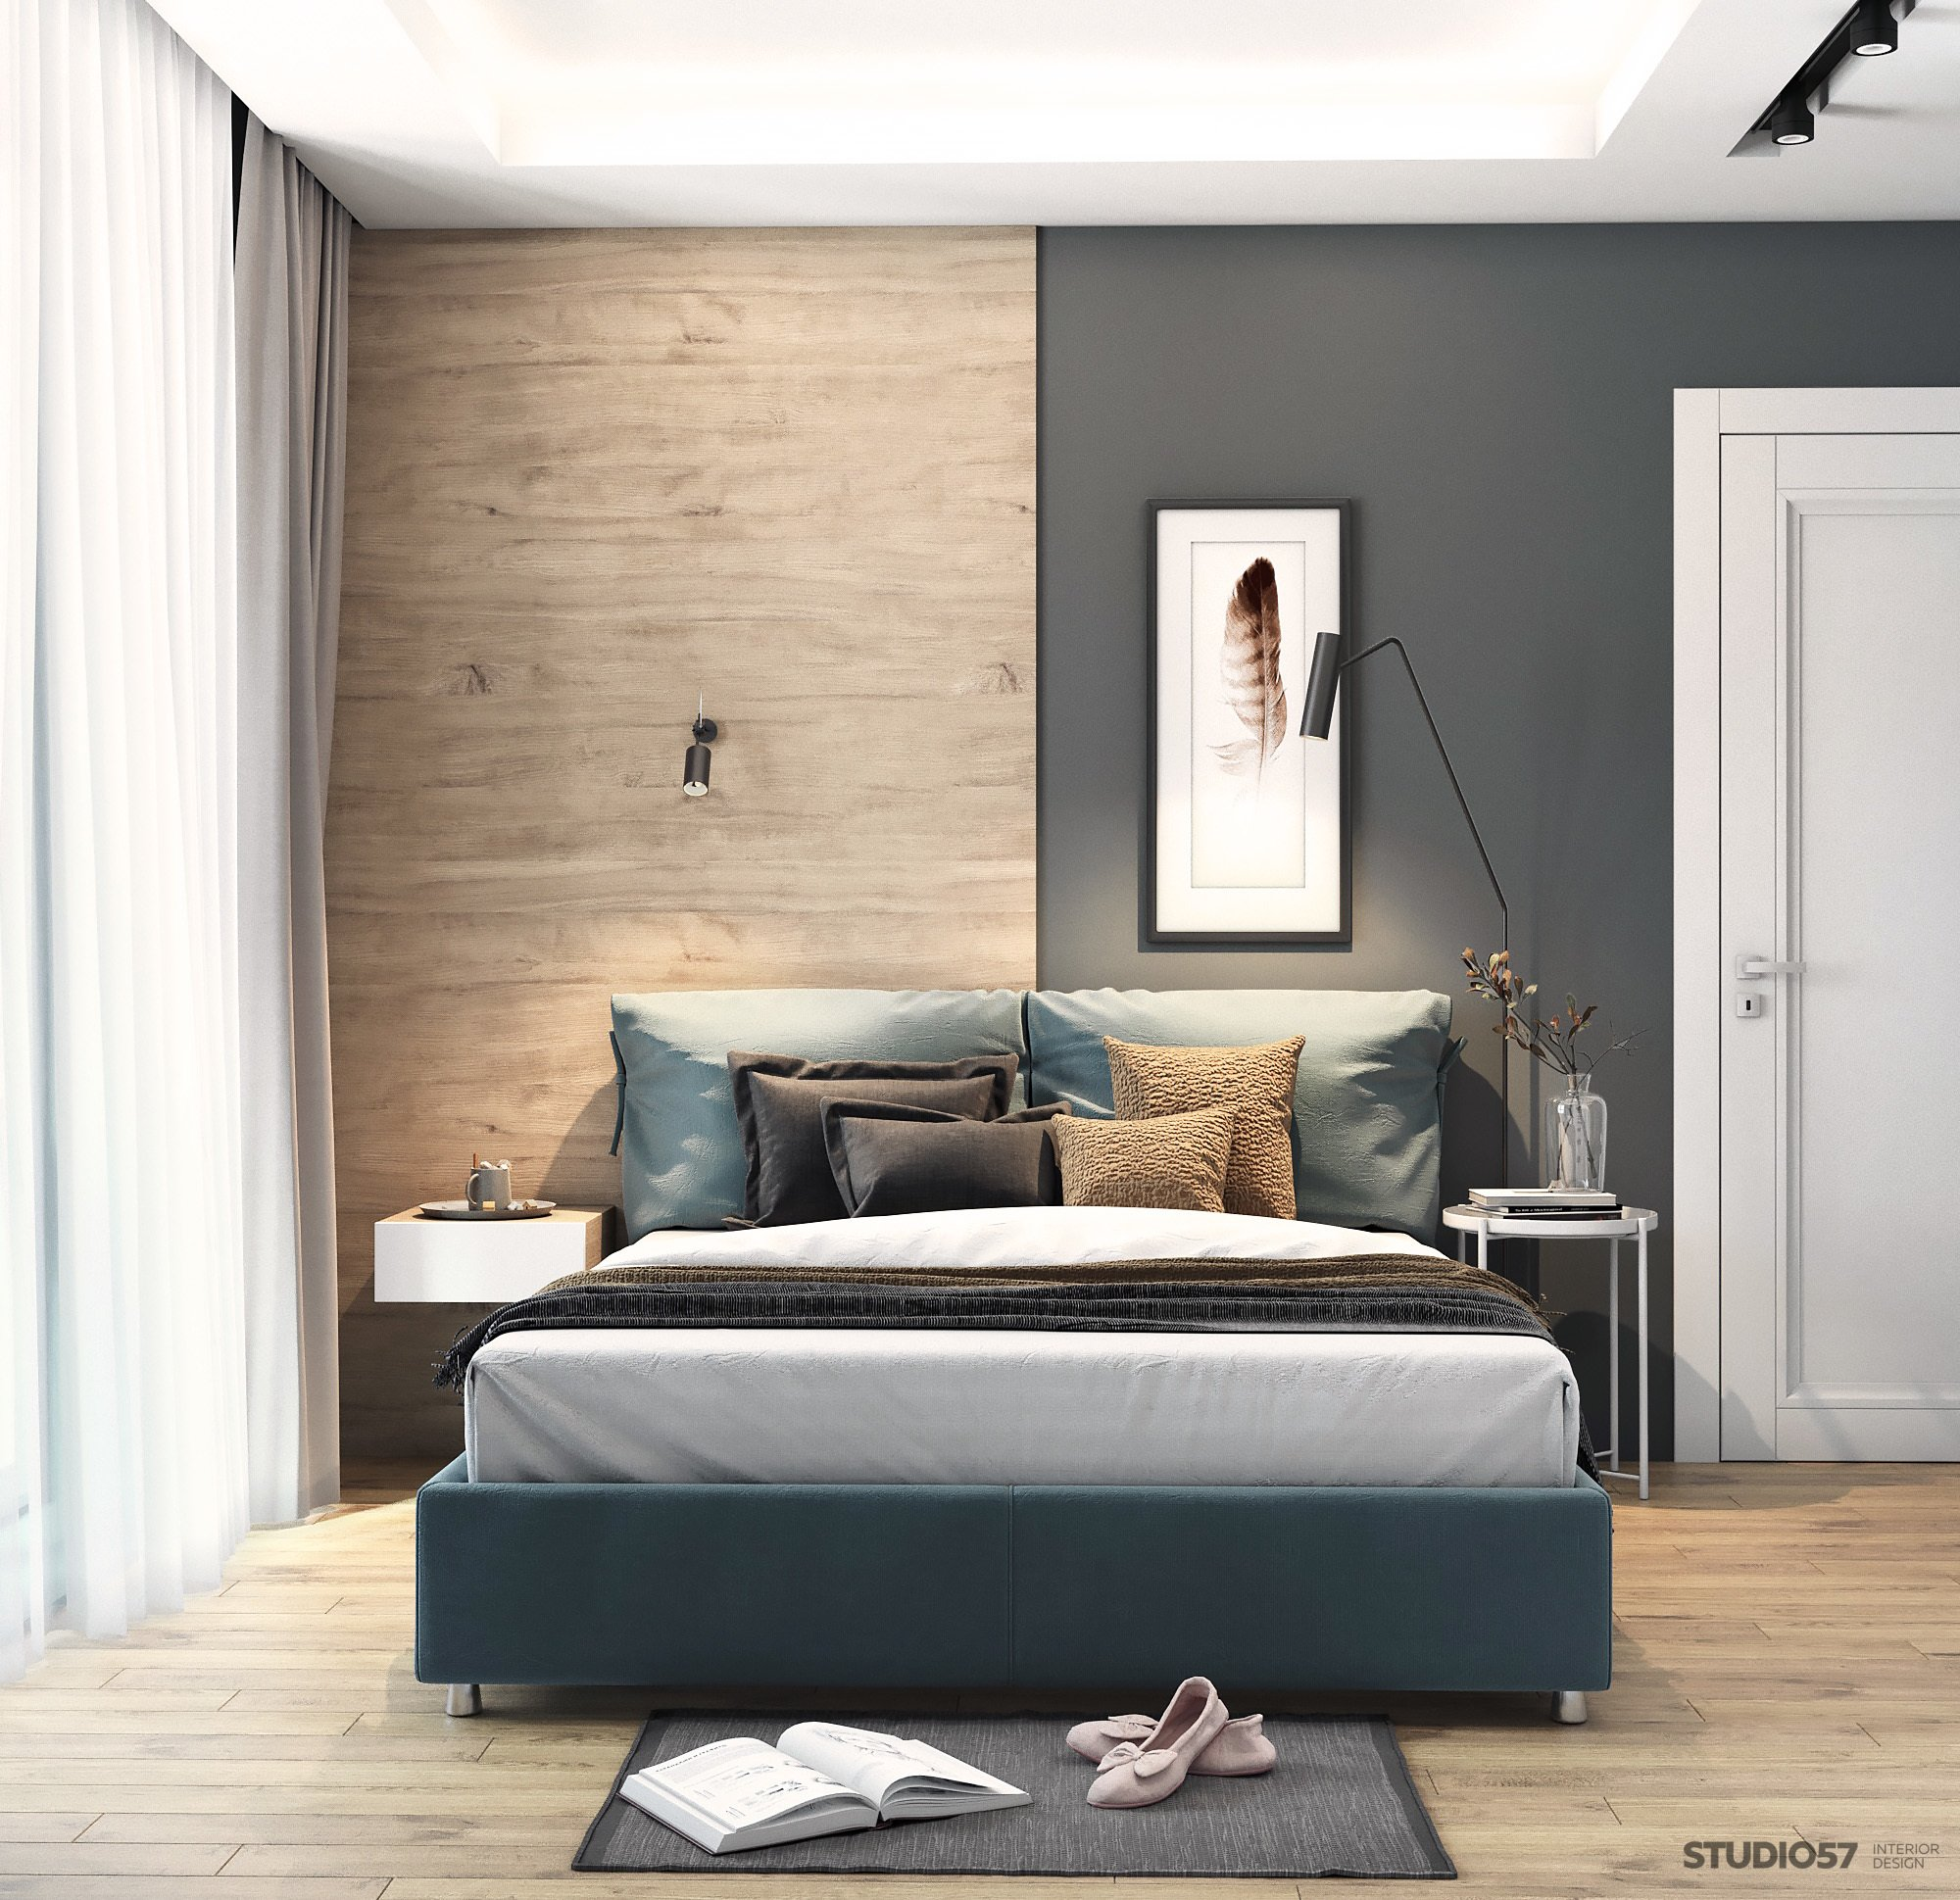 How to make a bedroom in the style of Contemporary